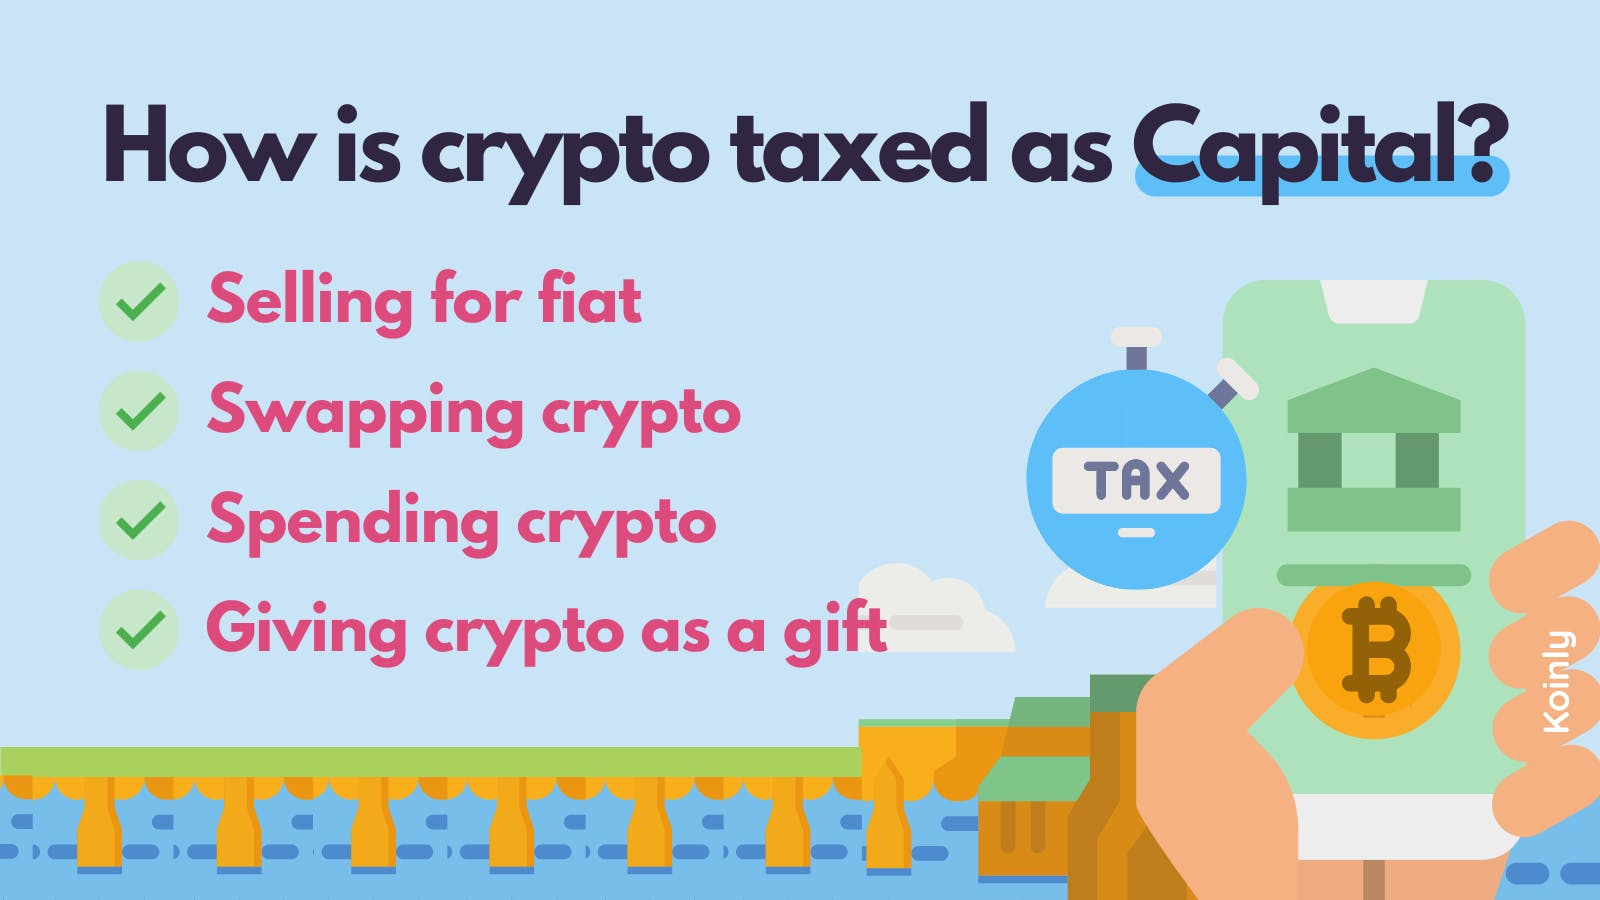 Cryptocurrency gains can be treated as capital gains tax